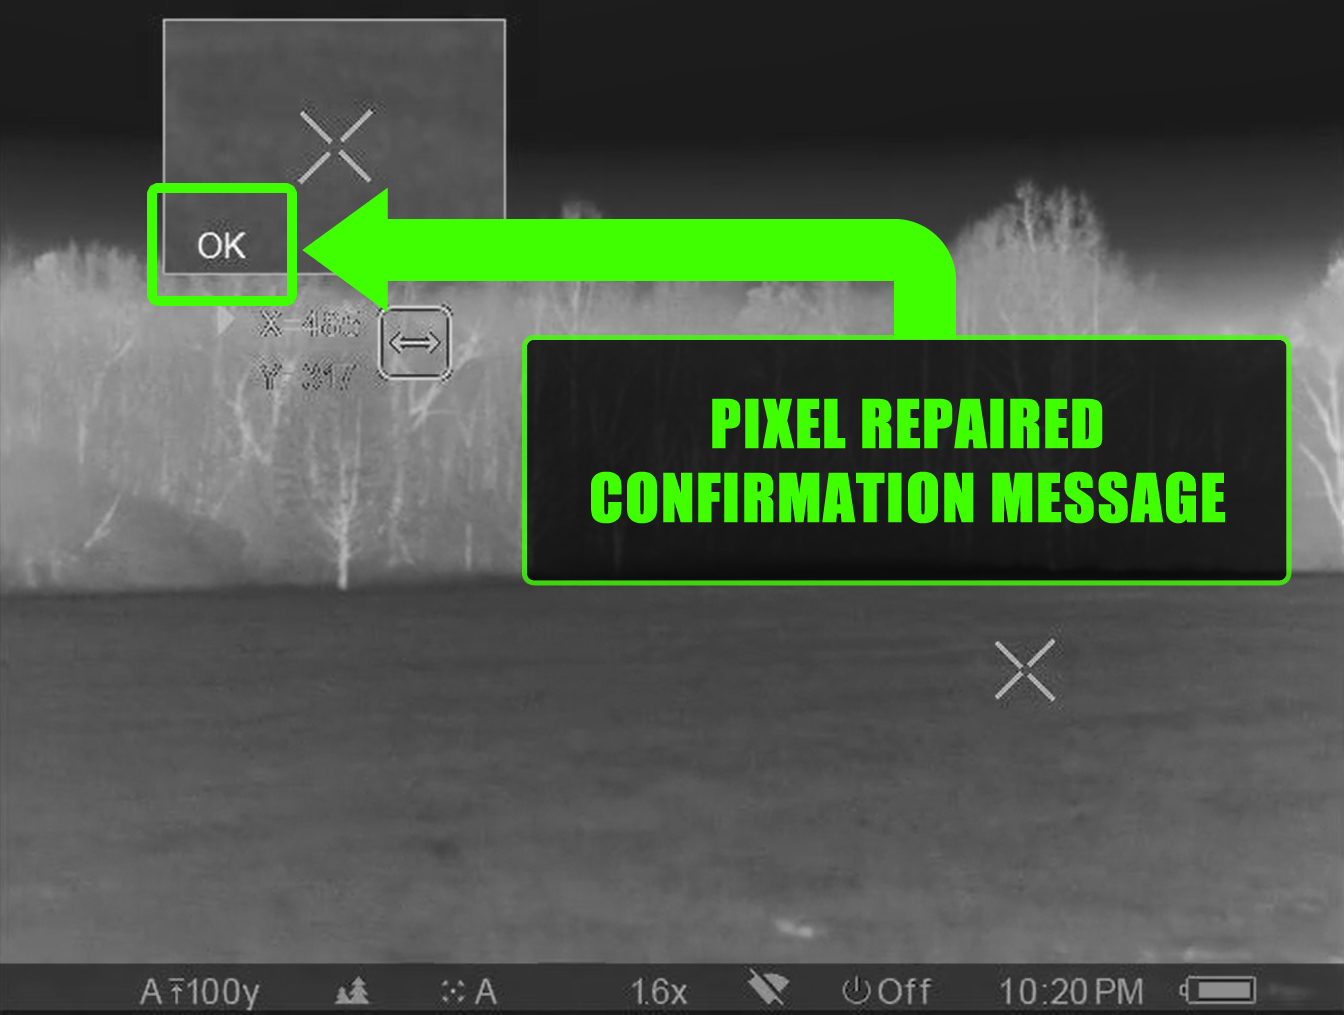 Screenshot of the pixel repair confirmation message in a Pulsar Trail XP-50 thermal scope